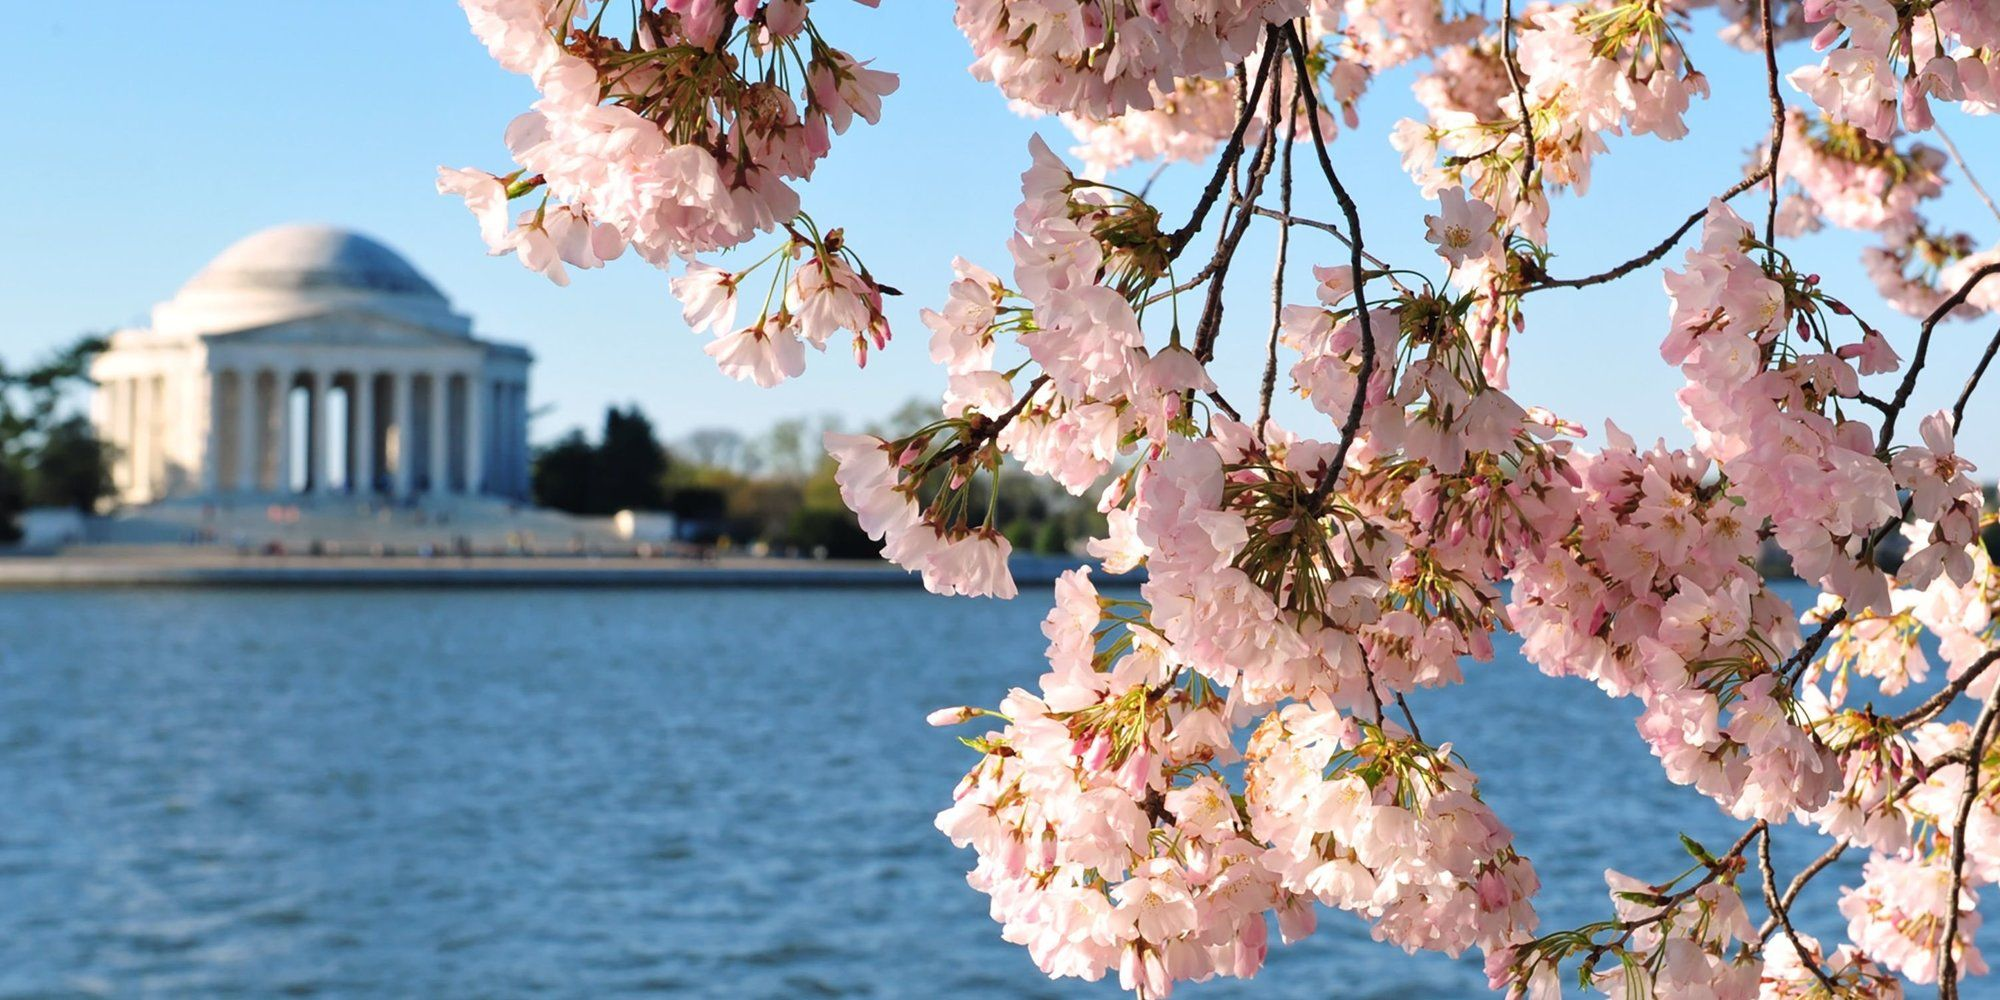 Freakishly Warm February Could Ring In Earliest Cherry Blossom Peak Bloom On Record Cherry Blossom Blossom Bloom